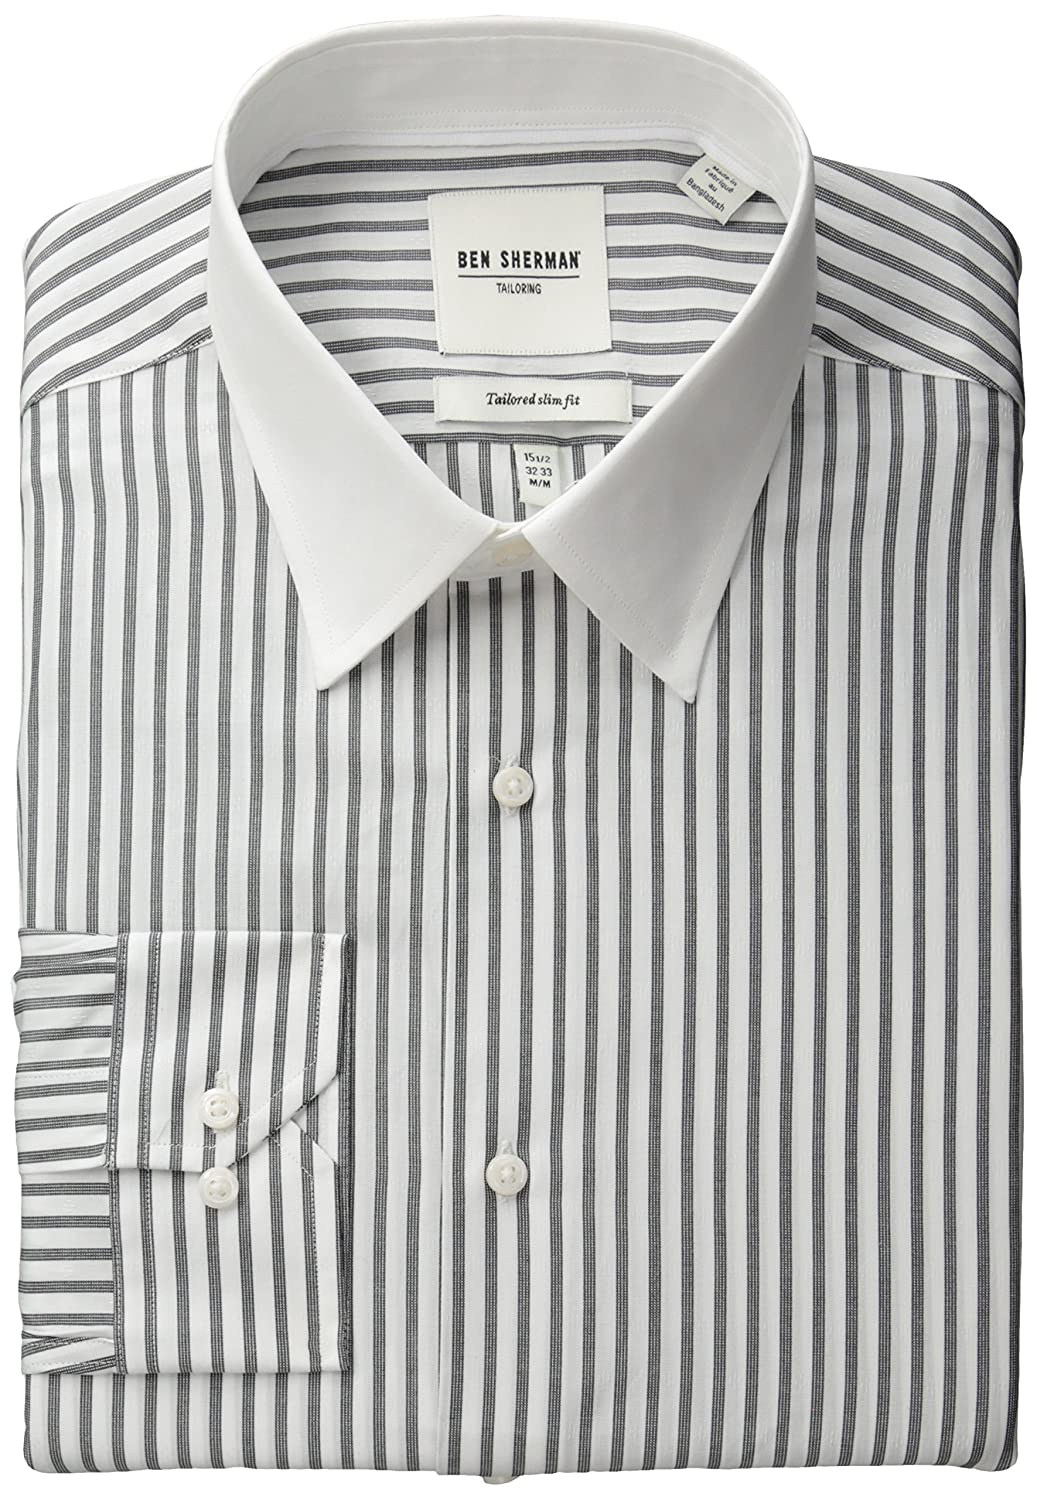 1920s collared shirt